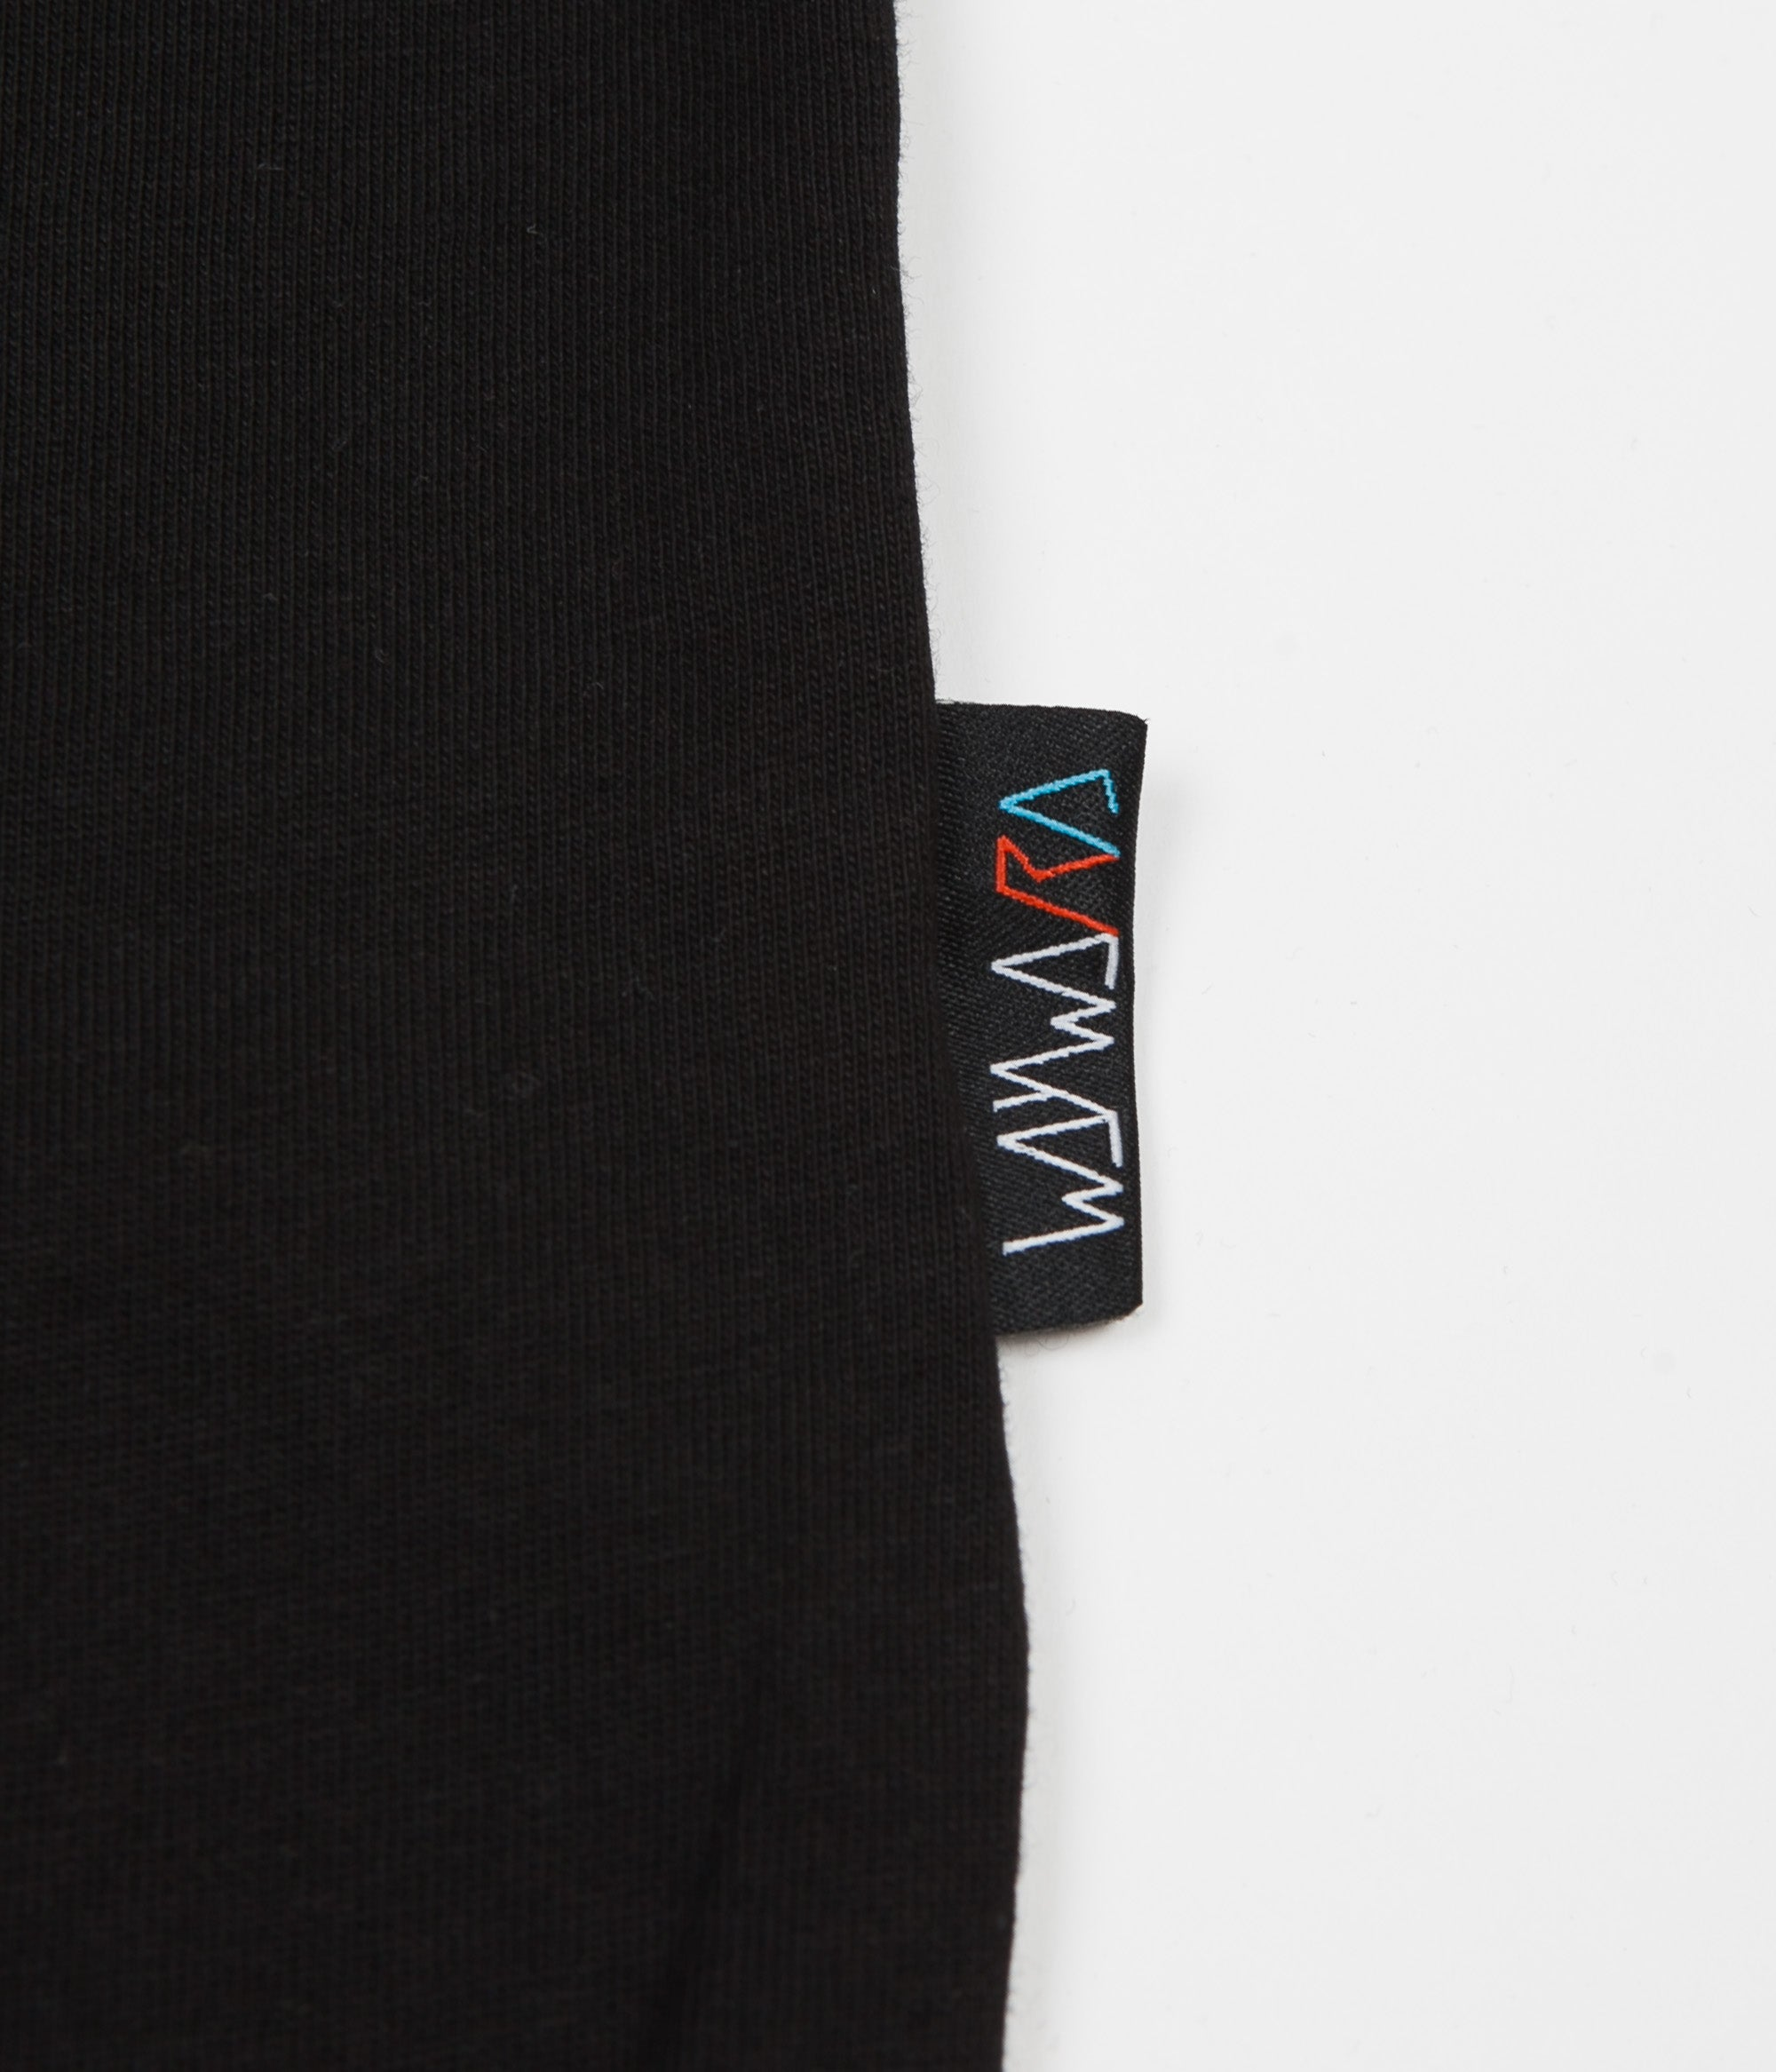 Wayward Drift Long Sleeve T-Shirt - Black